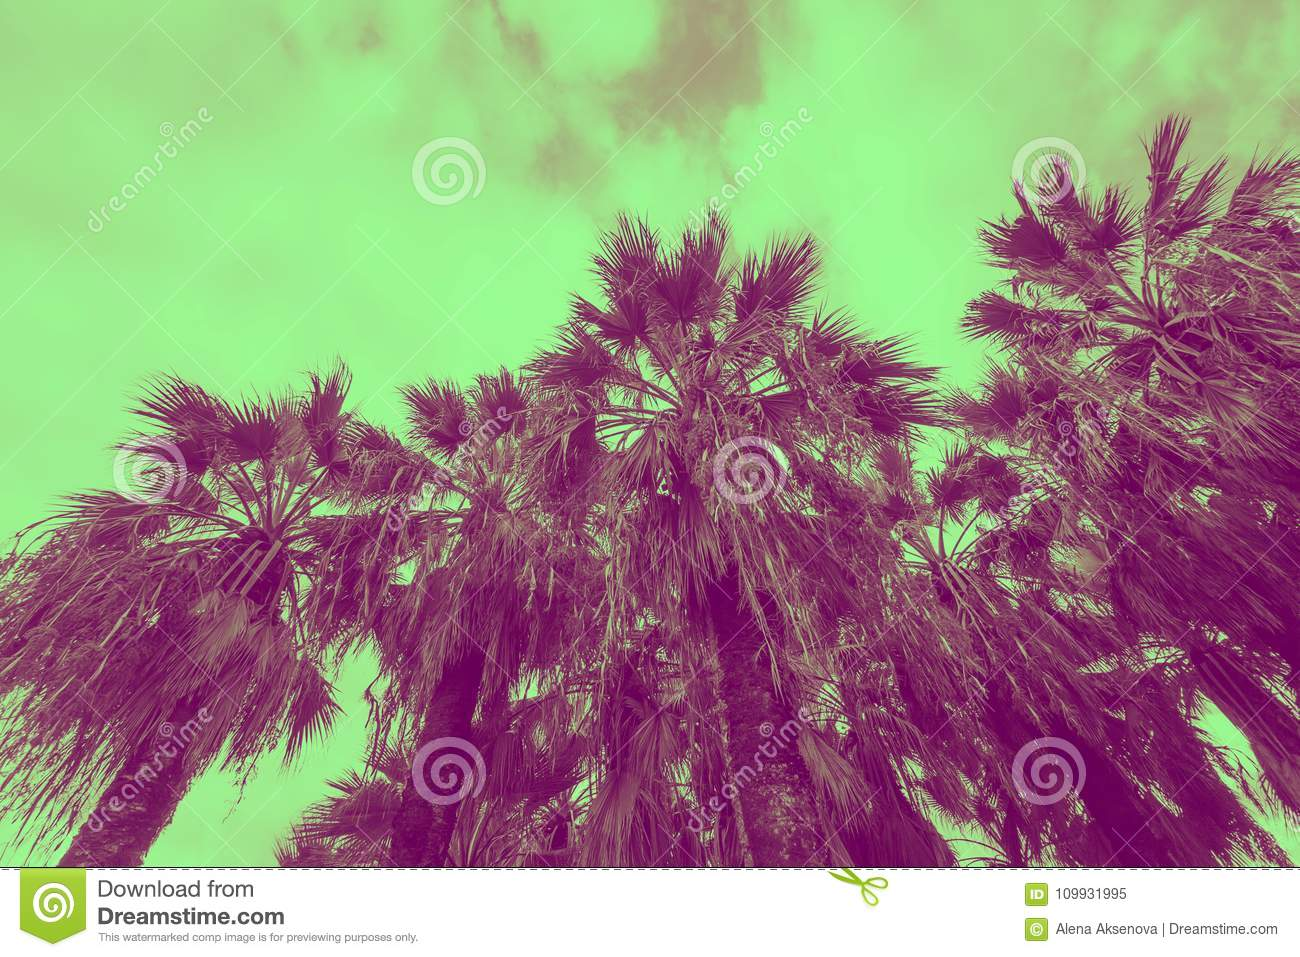 Palm Trees Toned In Green And Violet Colors Stock Image - Image of ...